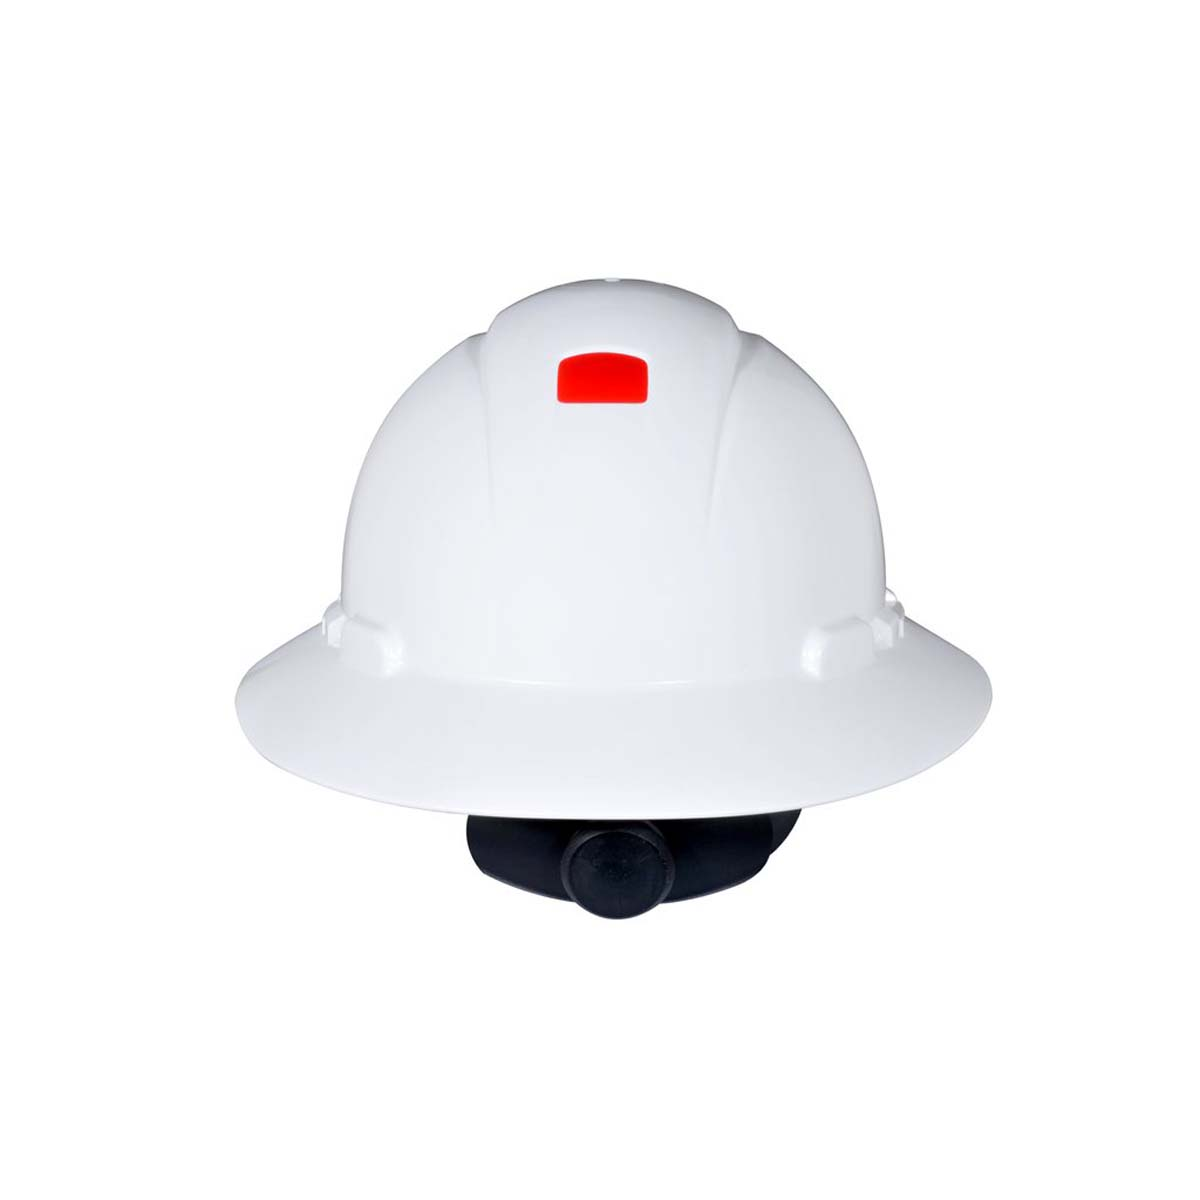 "3Mâ""¢ Full Brim Hard Hat H-801R-UV, White 4-Point Ratchet Suspension, with Uvicator,"